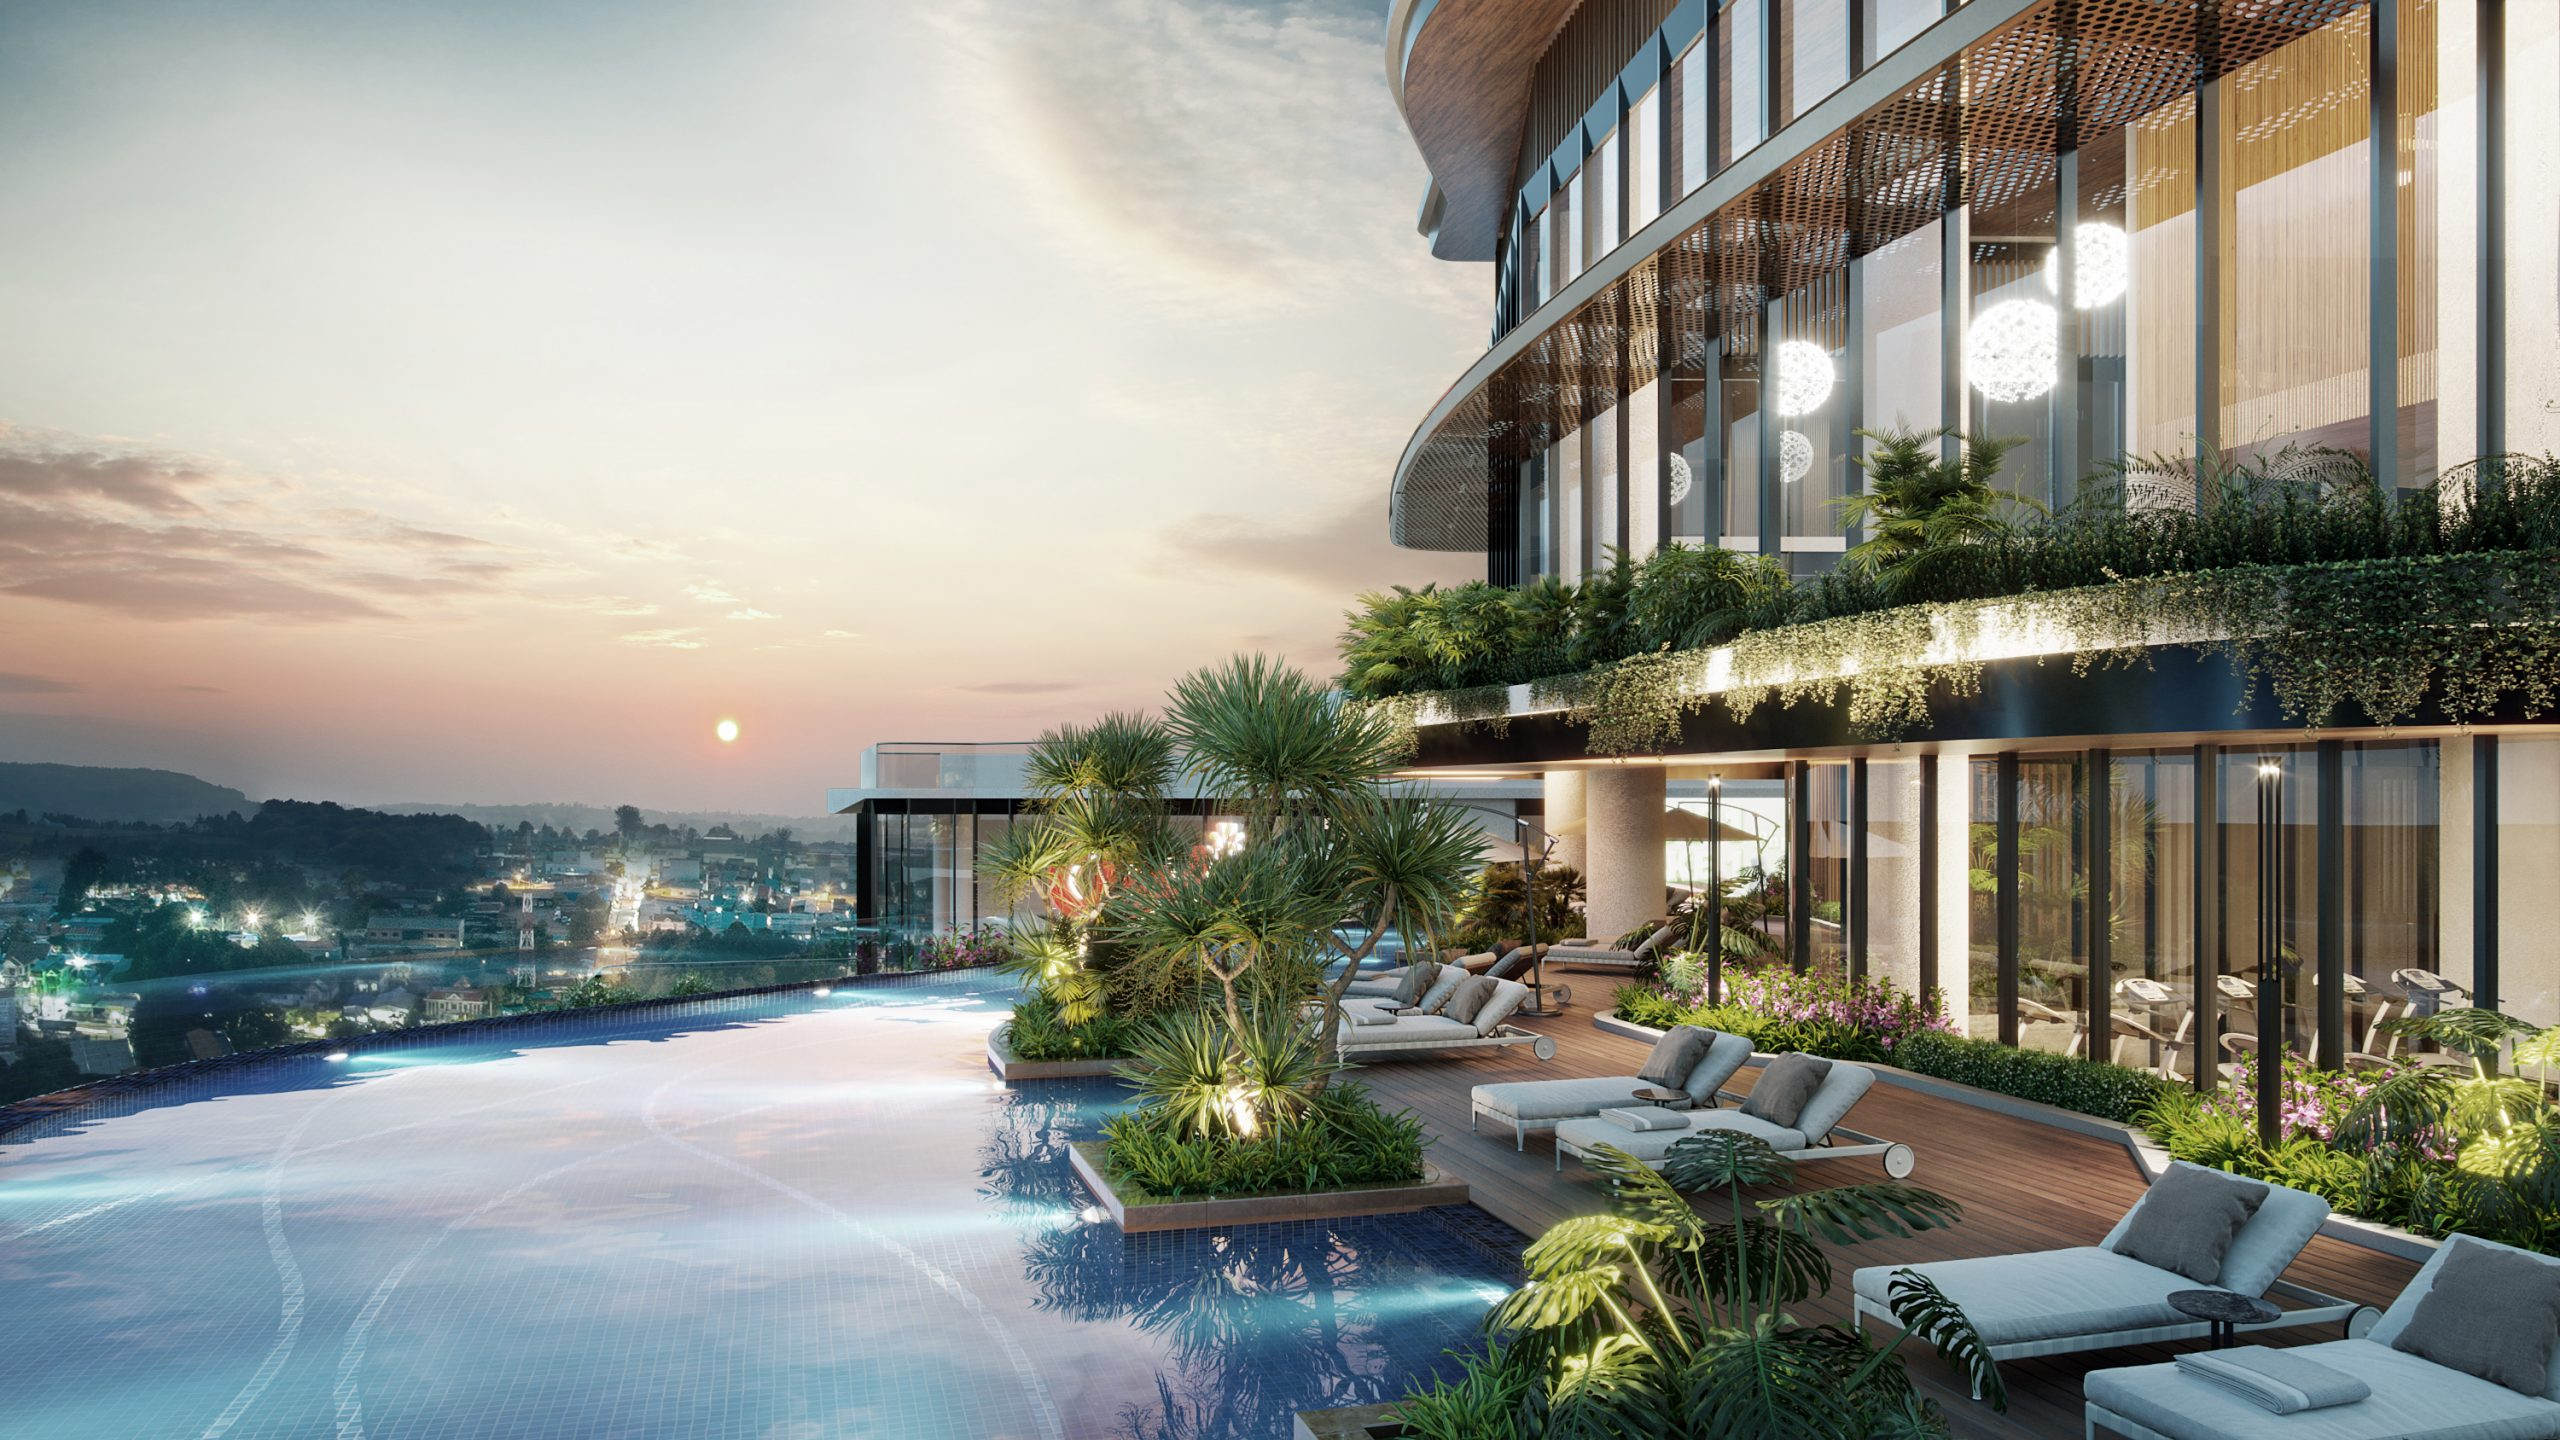 Anvo.vn - Outsourcing 3D Rendering